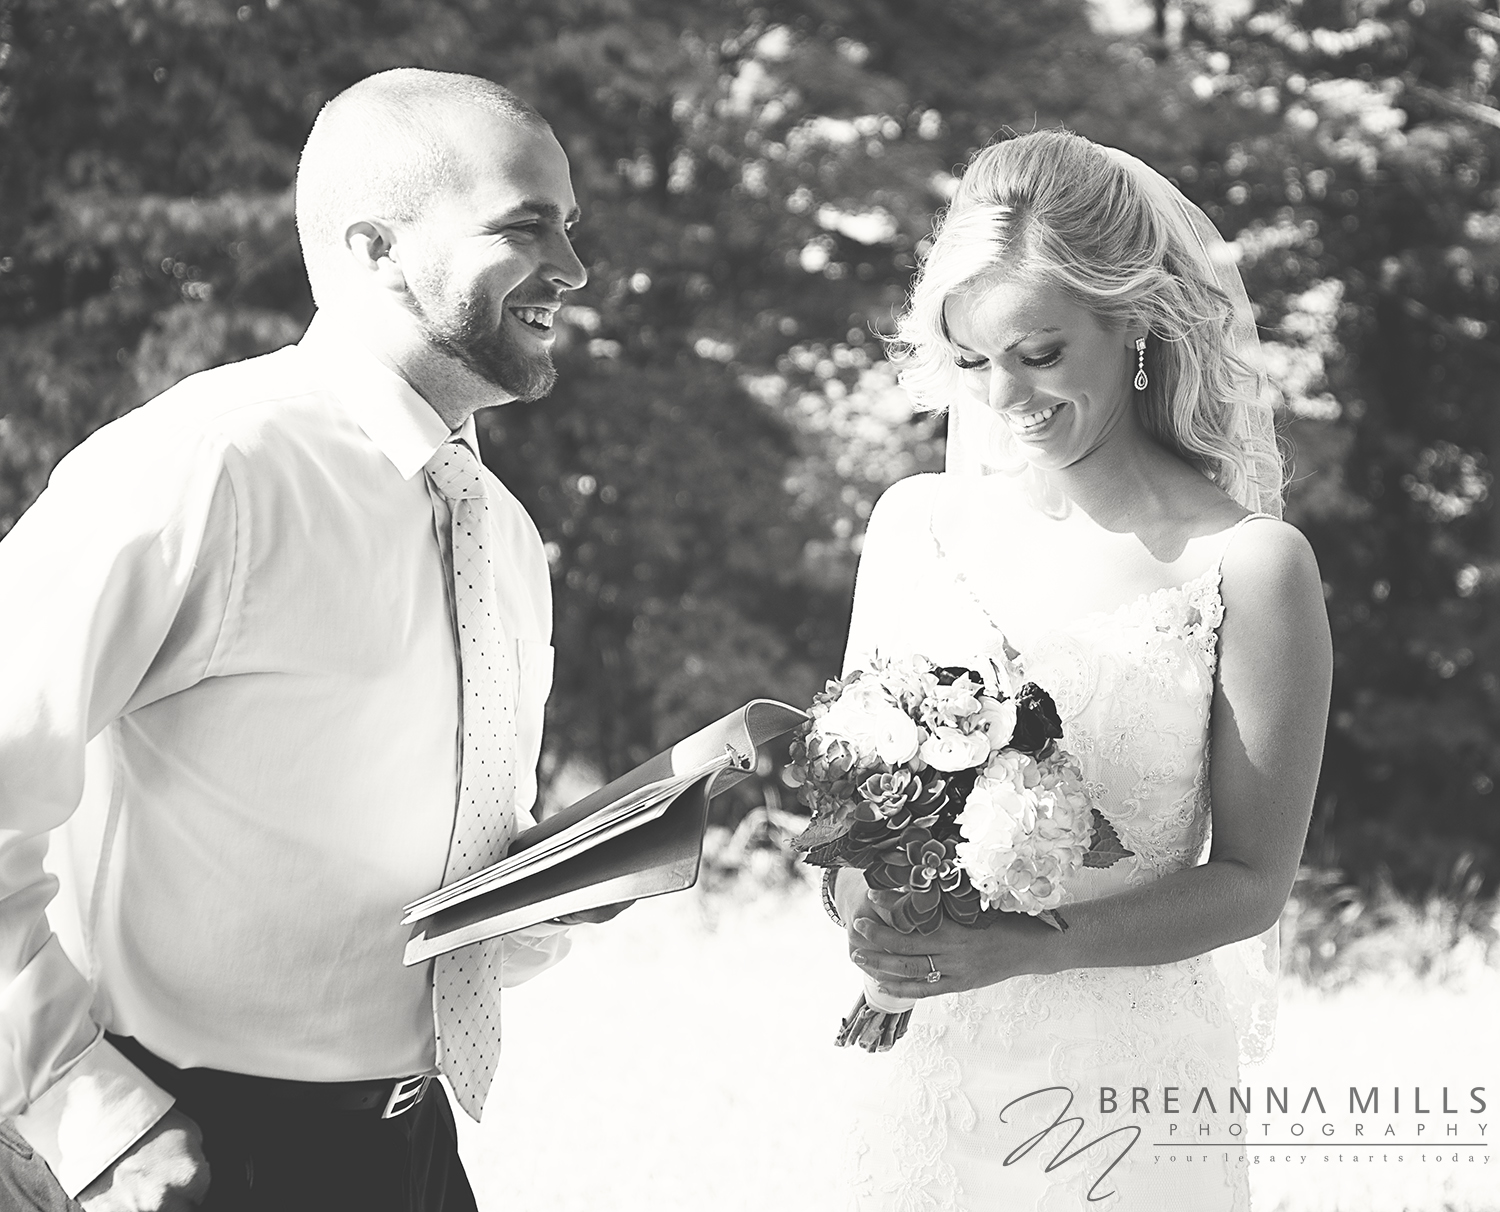 Johnson City Wedding Photographer Breanna Mills Photography captures a bride with minister on her wedding day at the Cory Ippolito Winery wedding venue.